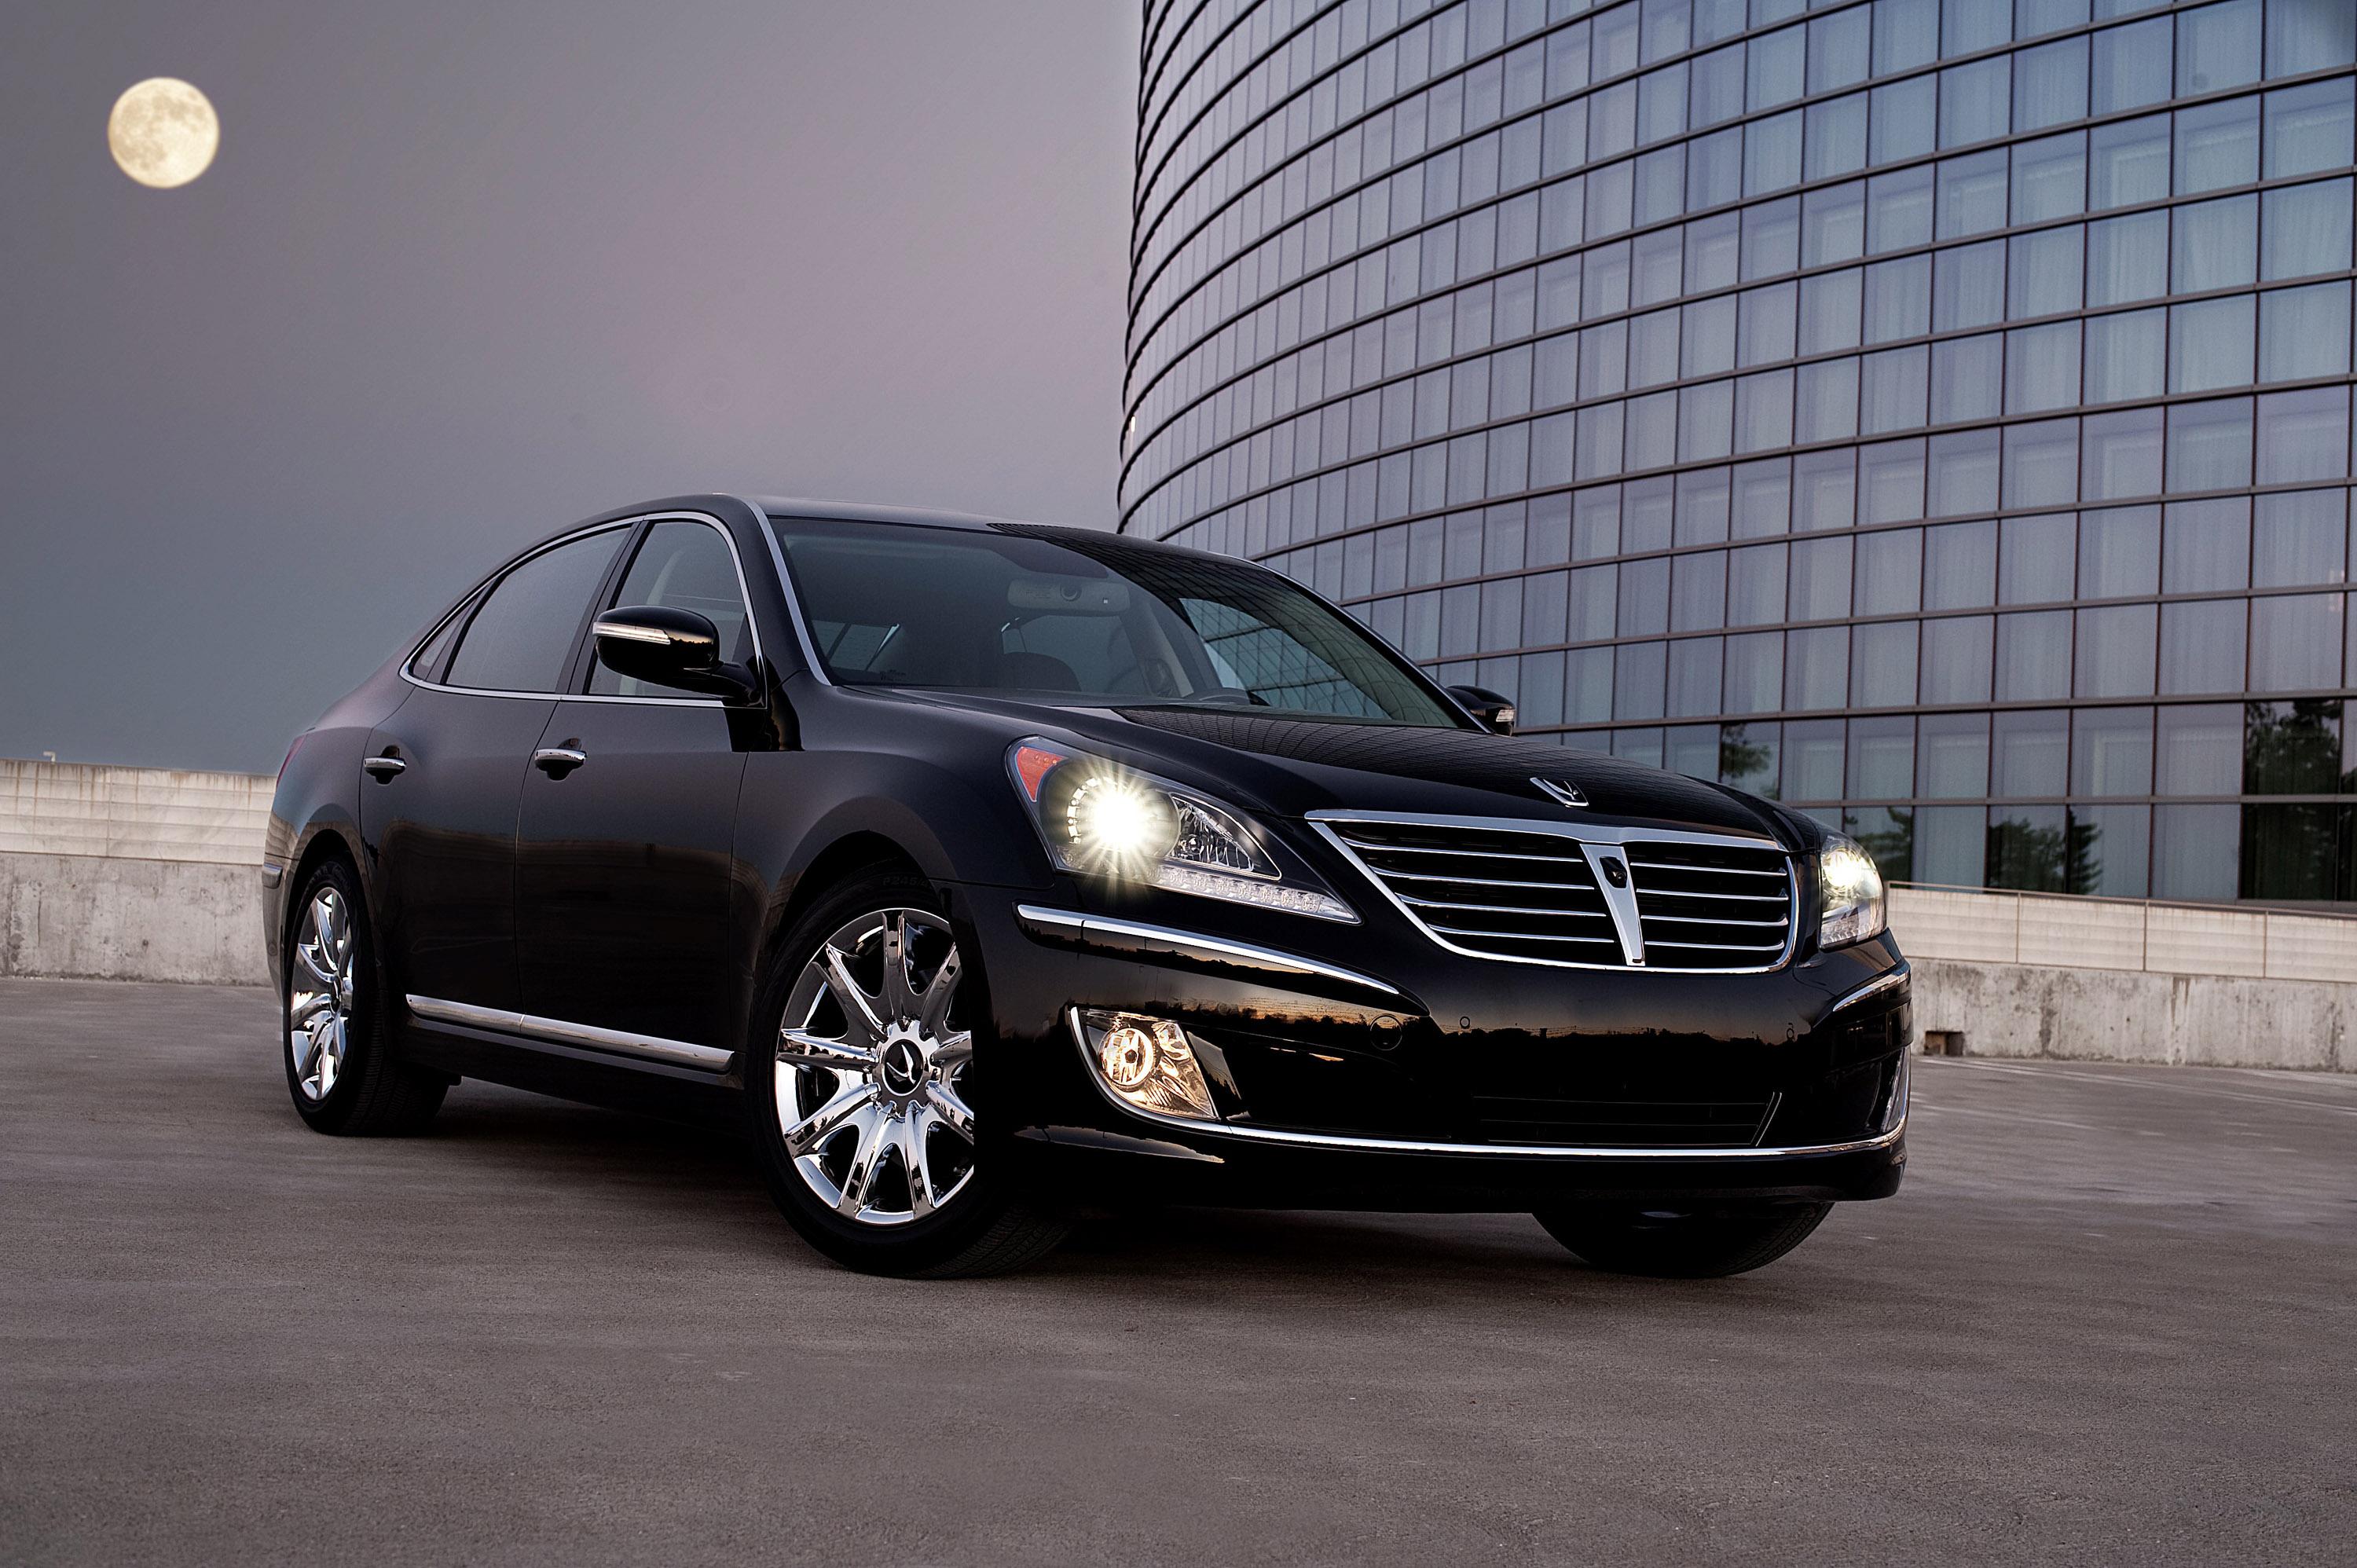 Hyundai Equus photo #1